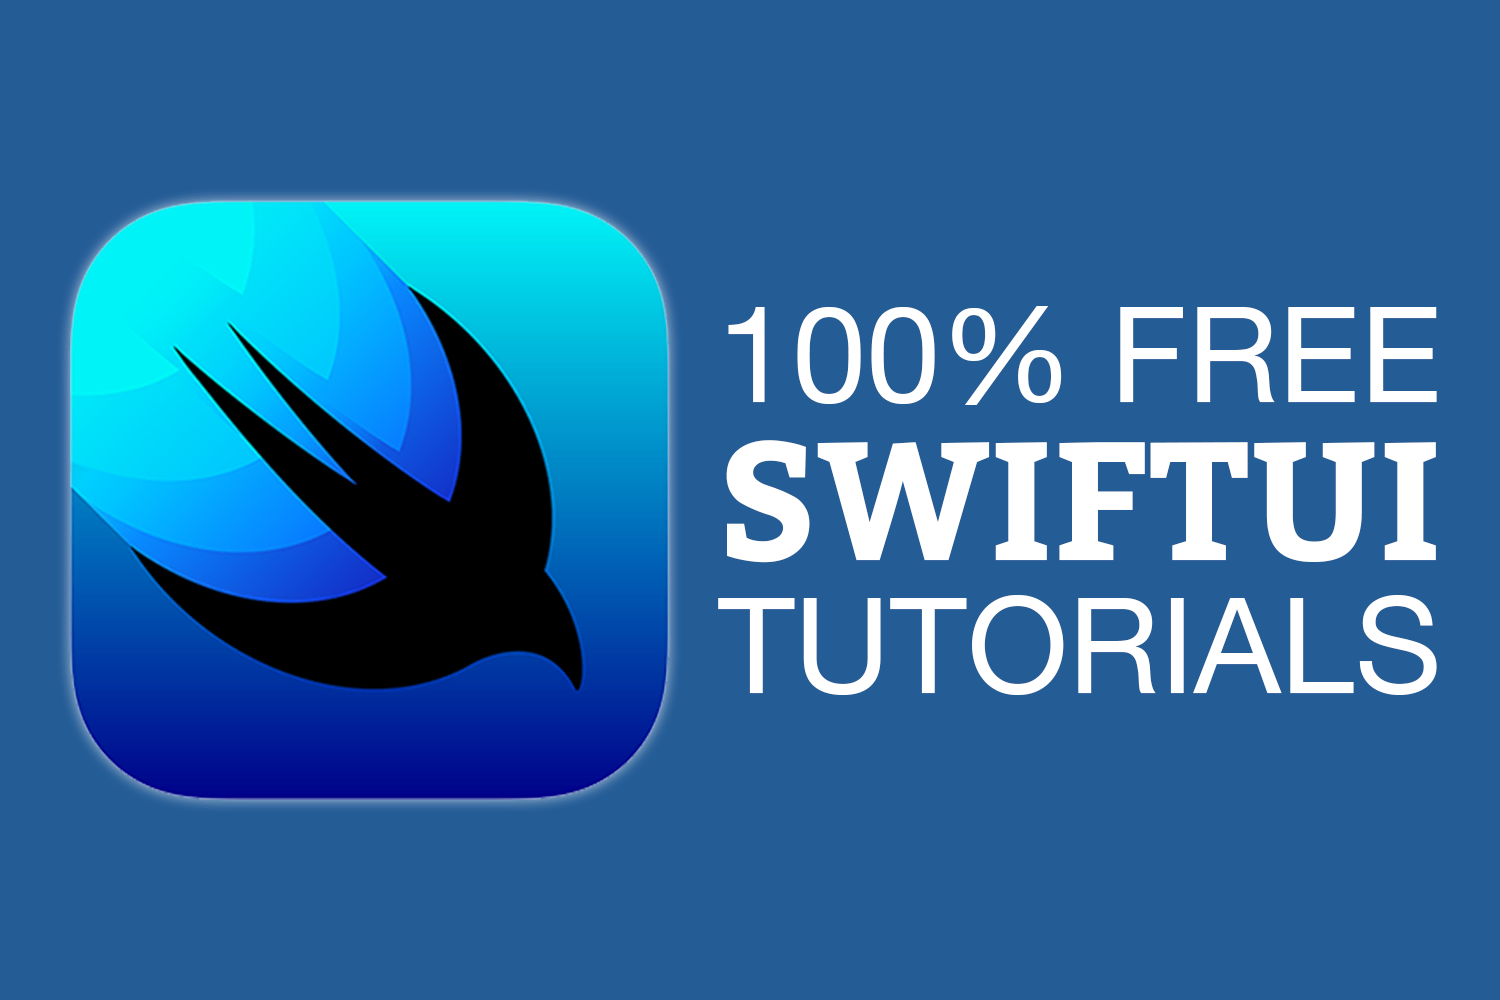 What's new in iOS 13? – Hacking with Swift